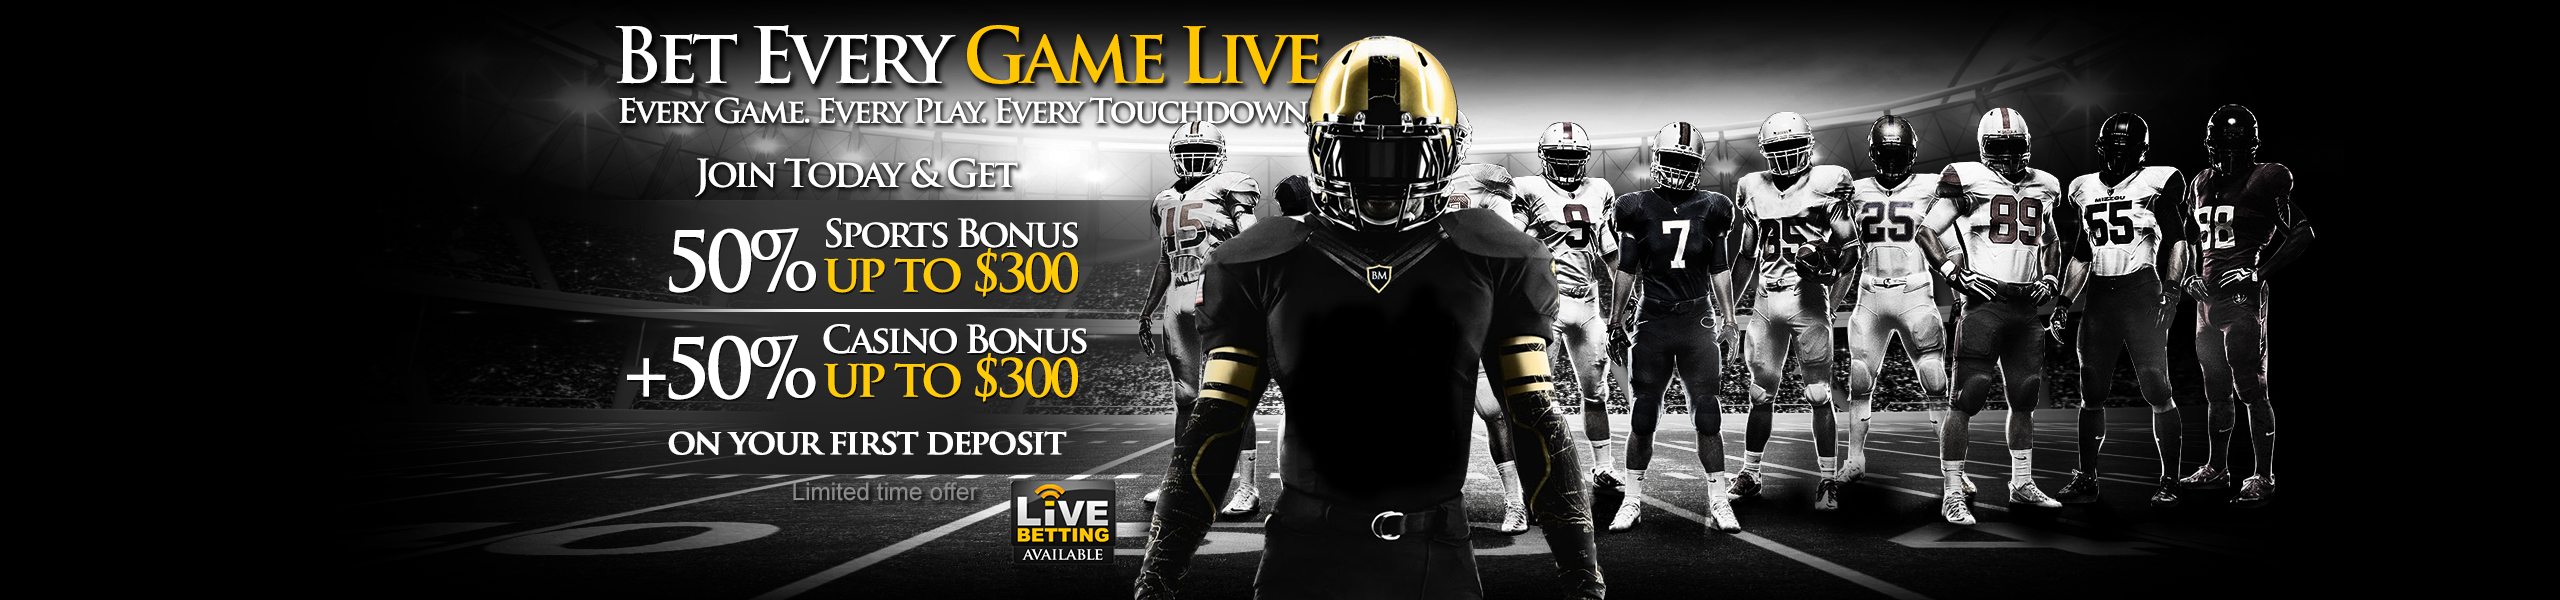 Superbowl contests sportsbooks promotions casino deposit bonus sportsbooks contests coach sandia casino & hotel